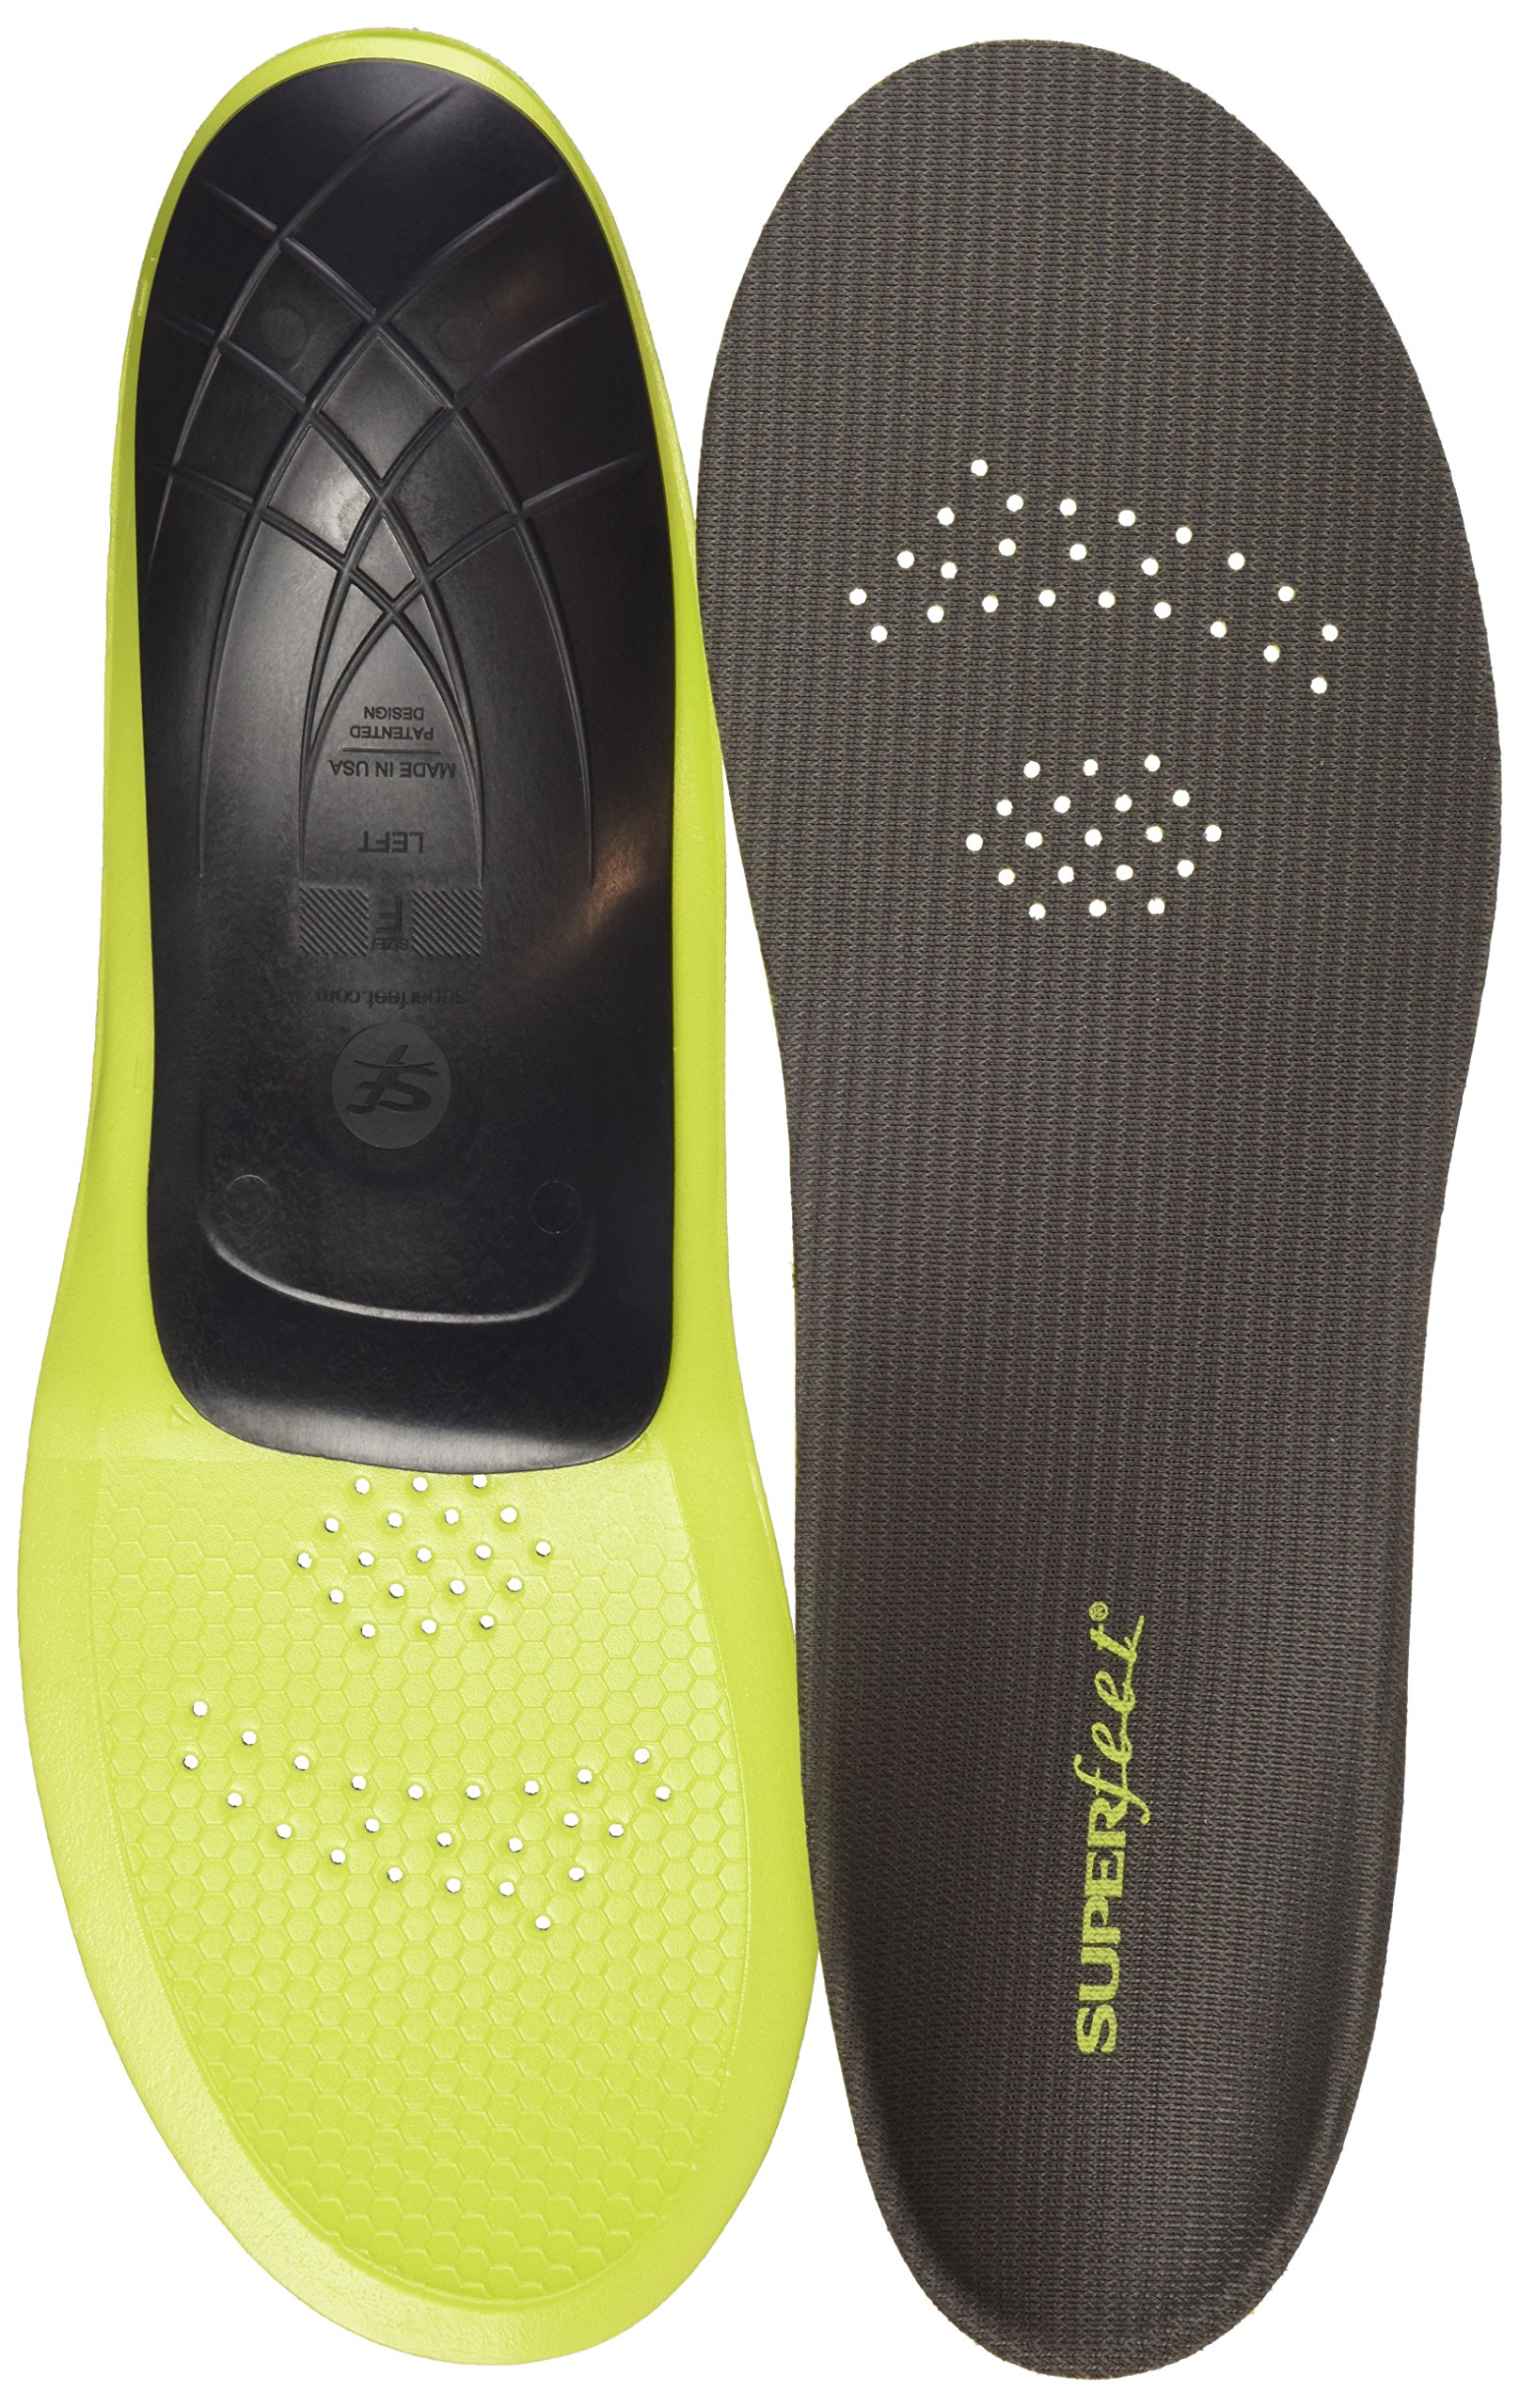 Superfeet CARBON, Sport Shoe Carbon Fiber Performance Thin Insoles, Unisex, Gray, X-Small/4.5-6 Wmns/2.5-4 Juniors by Superfeet